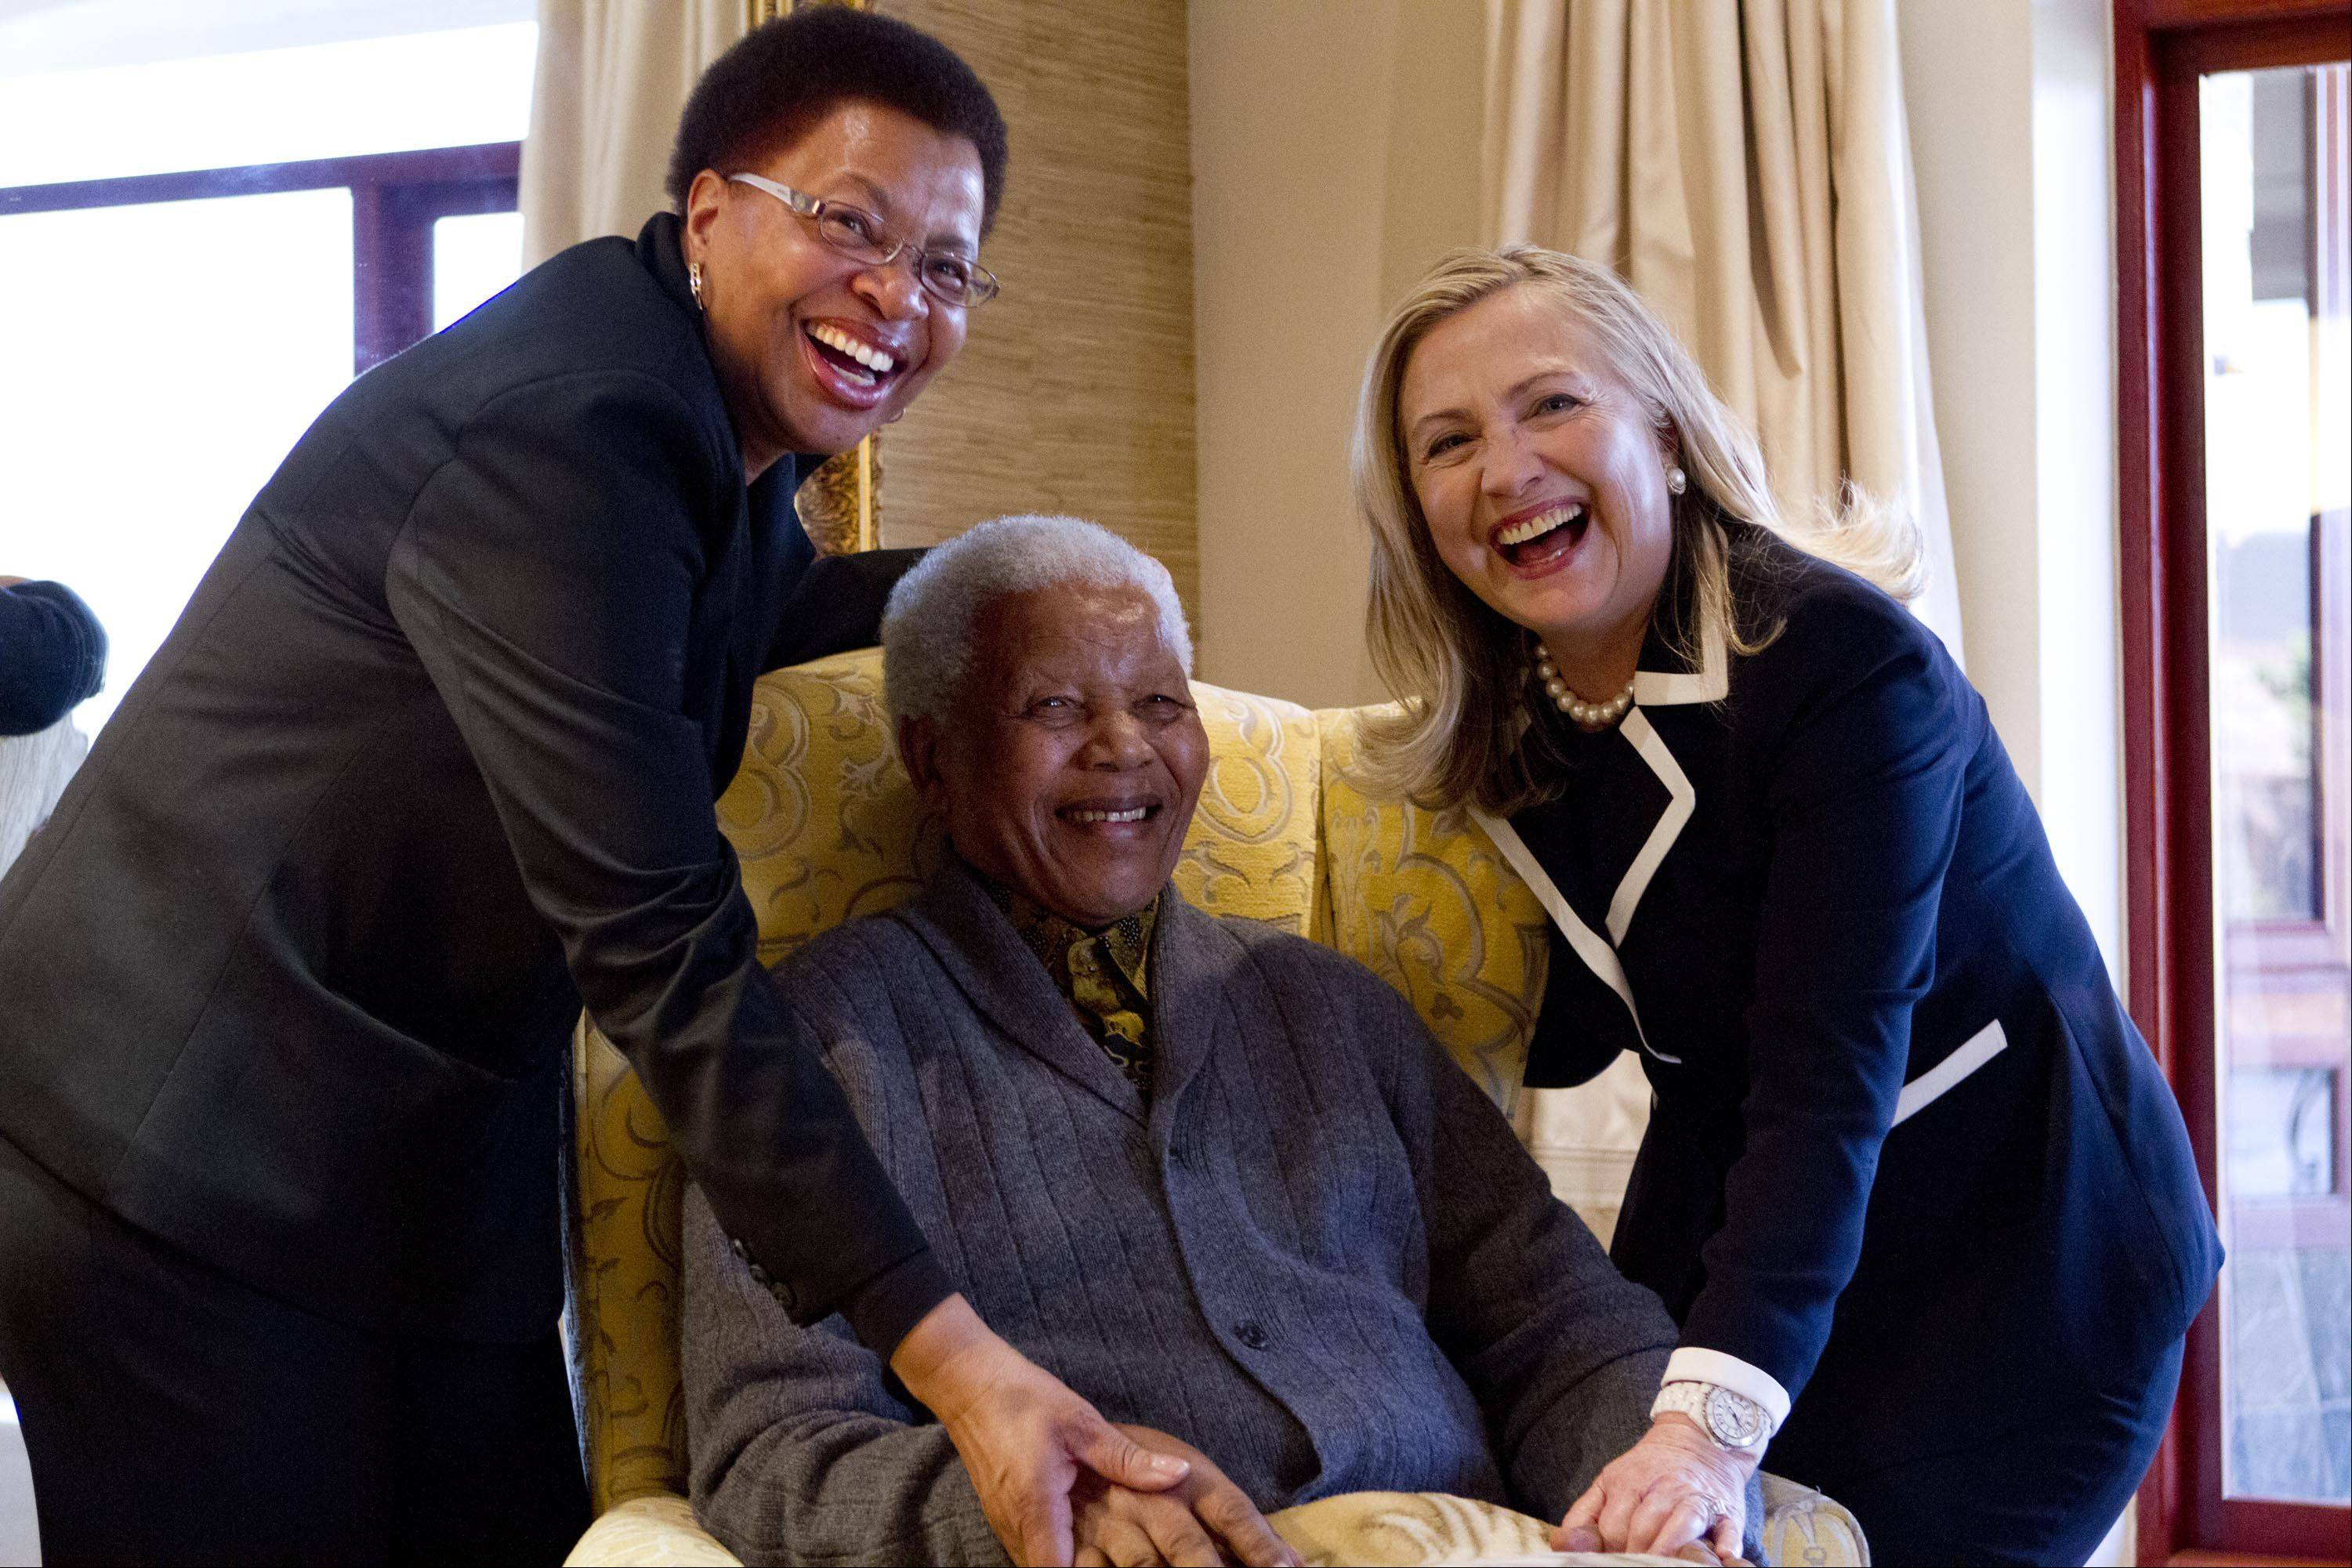 Secretary of State Hillary Rodham Clinton meets with former South Africa President Nelson Mandela, 94, and his wife Graca Machel at his home in Qunu, South Africa, Monday, Aug. 6, 2012.